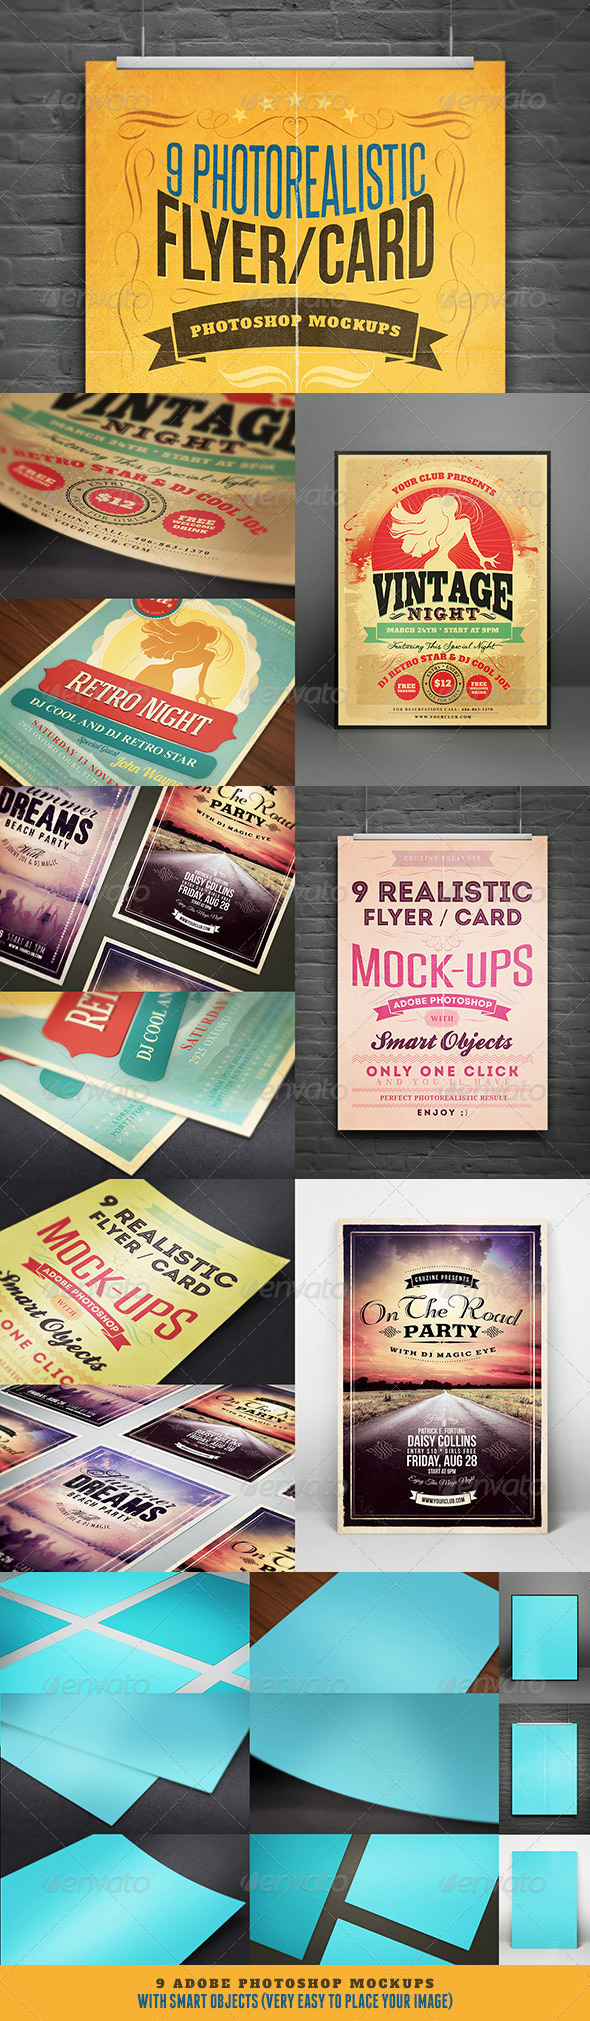 Realistic Flyer/Card Mock-Ups Vol.1 - Flyers Print